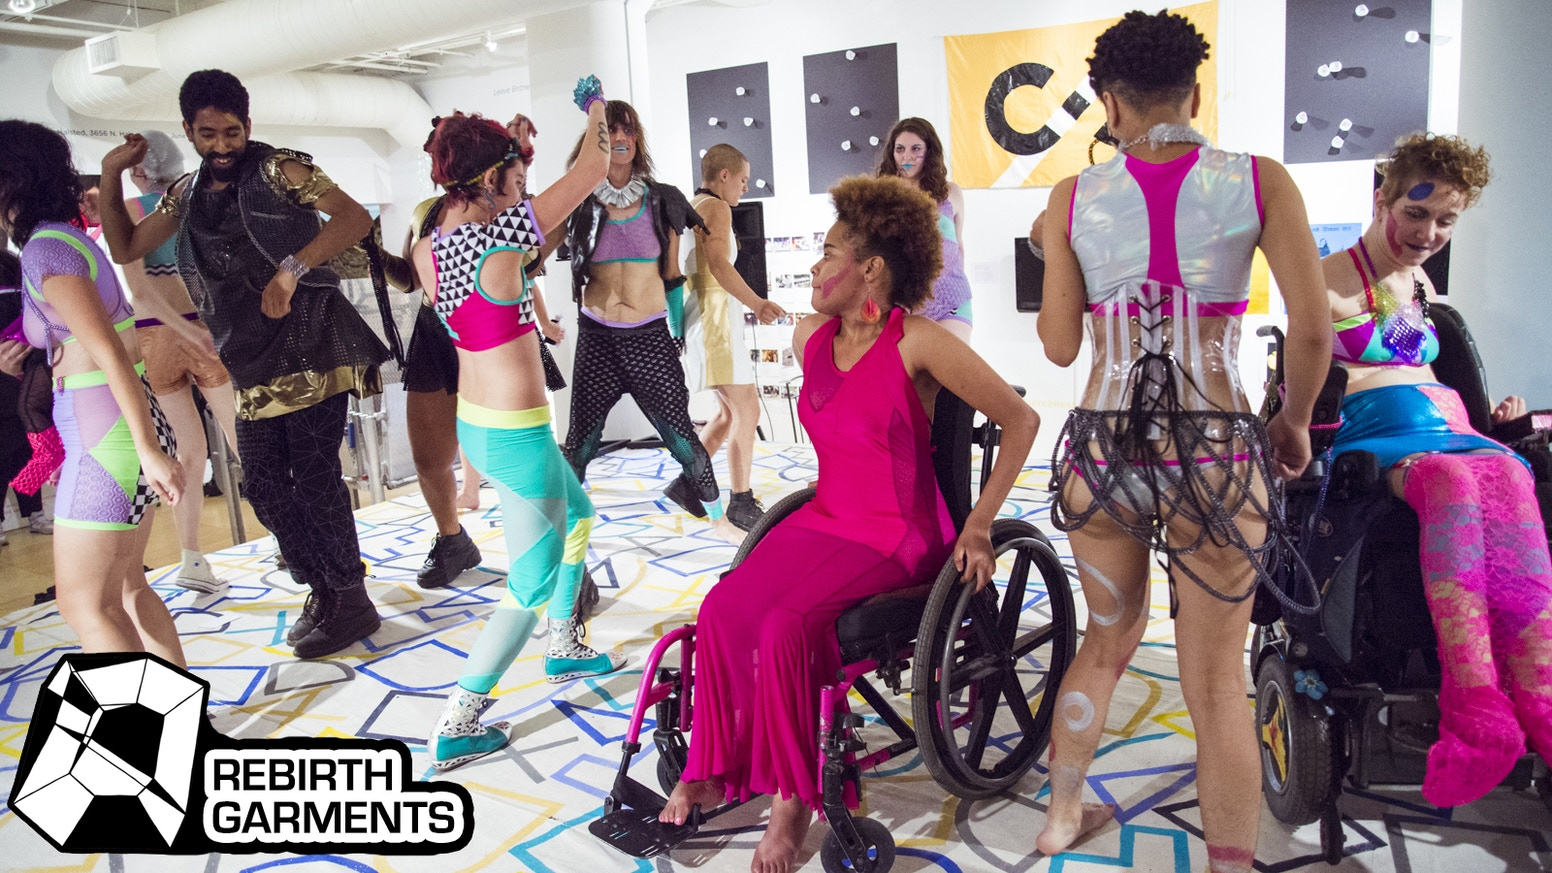 Rebirth Garments Queer Fashion For All Bodies And Abilities By Sky